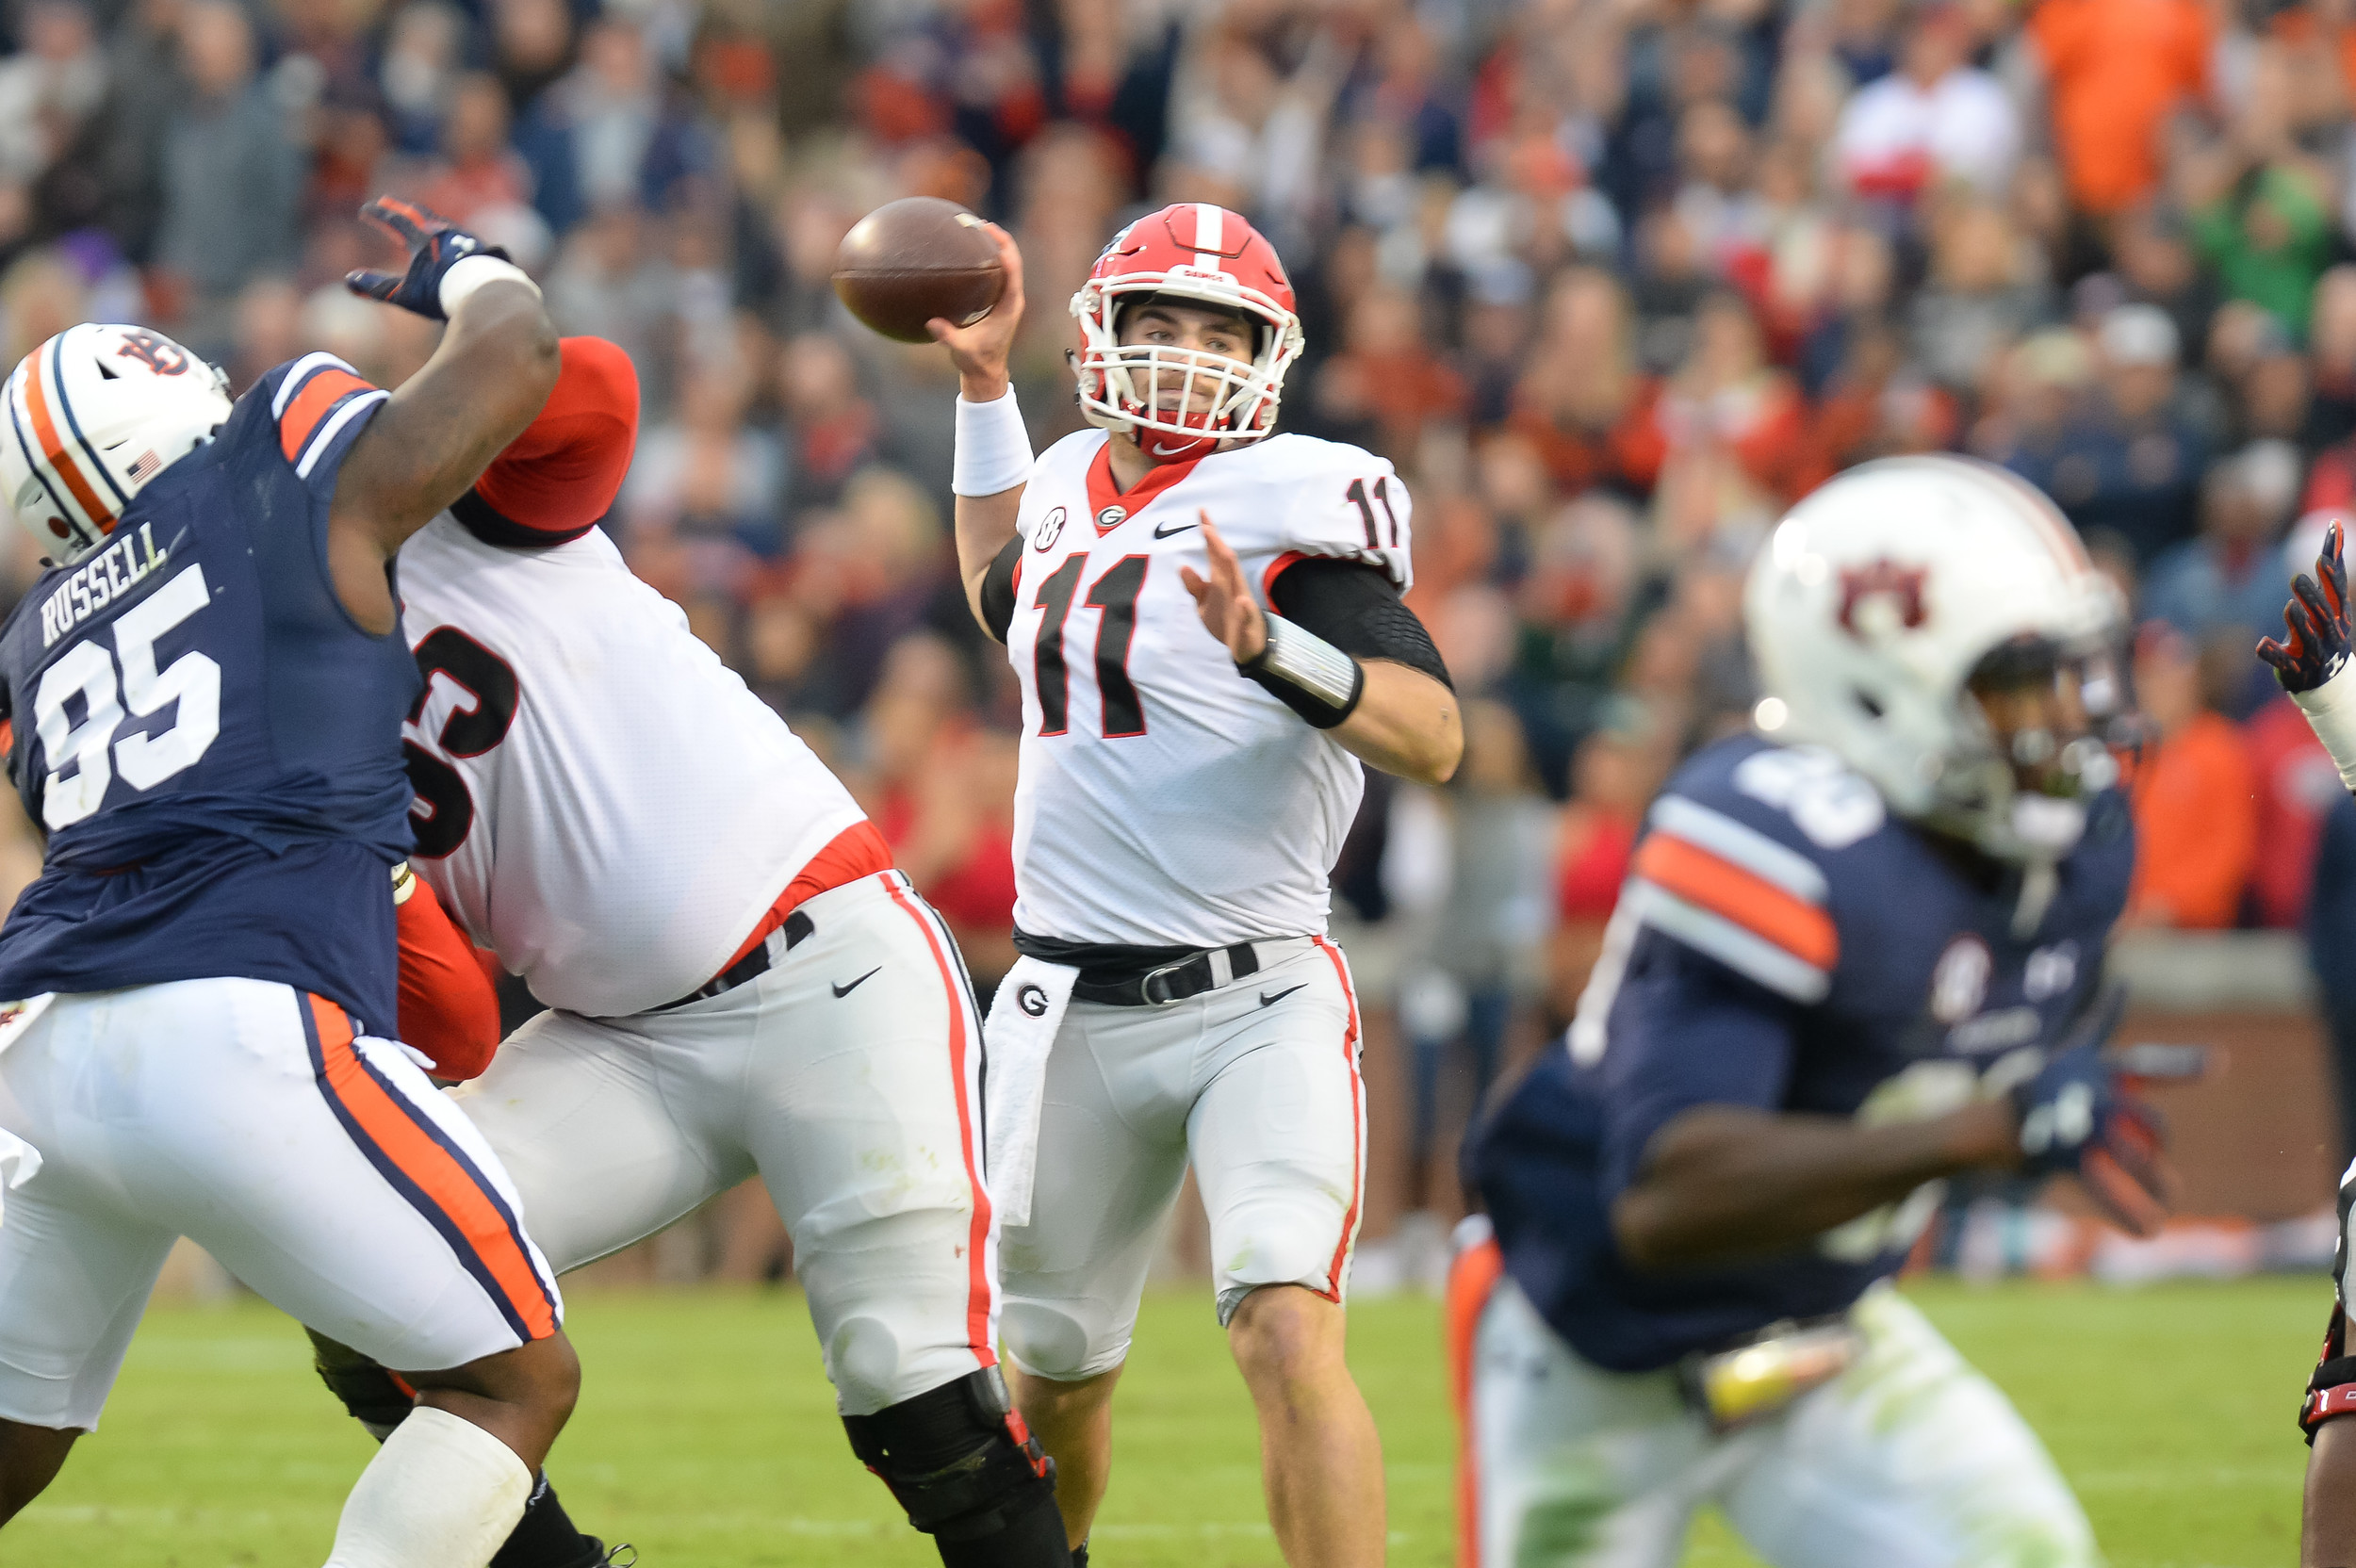 Georgia Bulldogs quarterback Jake Fromm (11) throws during the first half of Saturday's game, at Jordan-Hare Stadium.